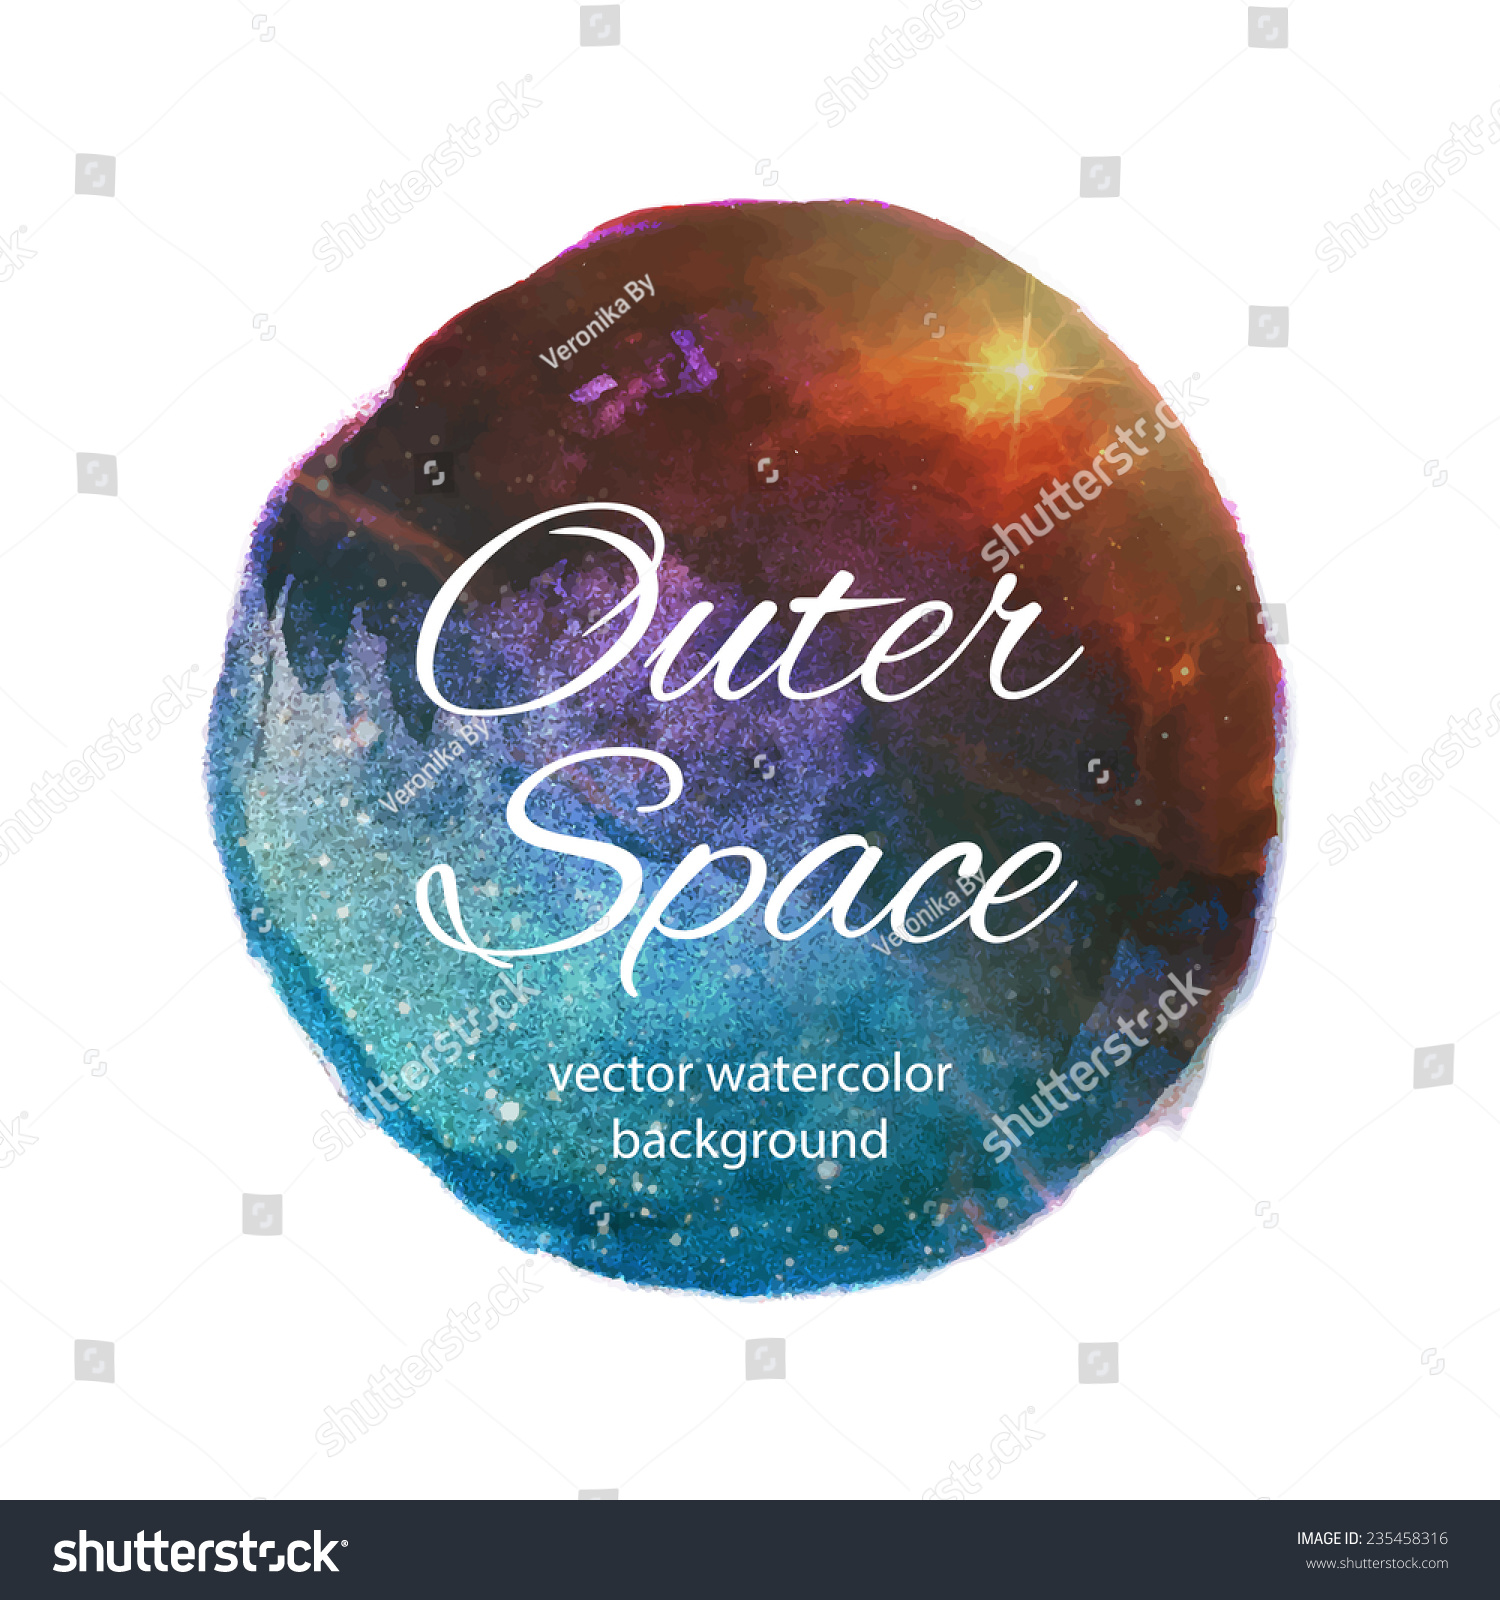 Outer space vector watercolor design stock vector for Outer space design richmond